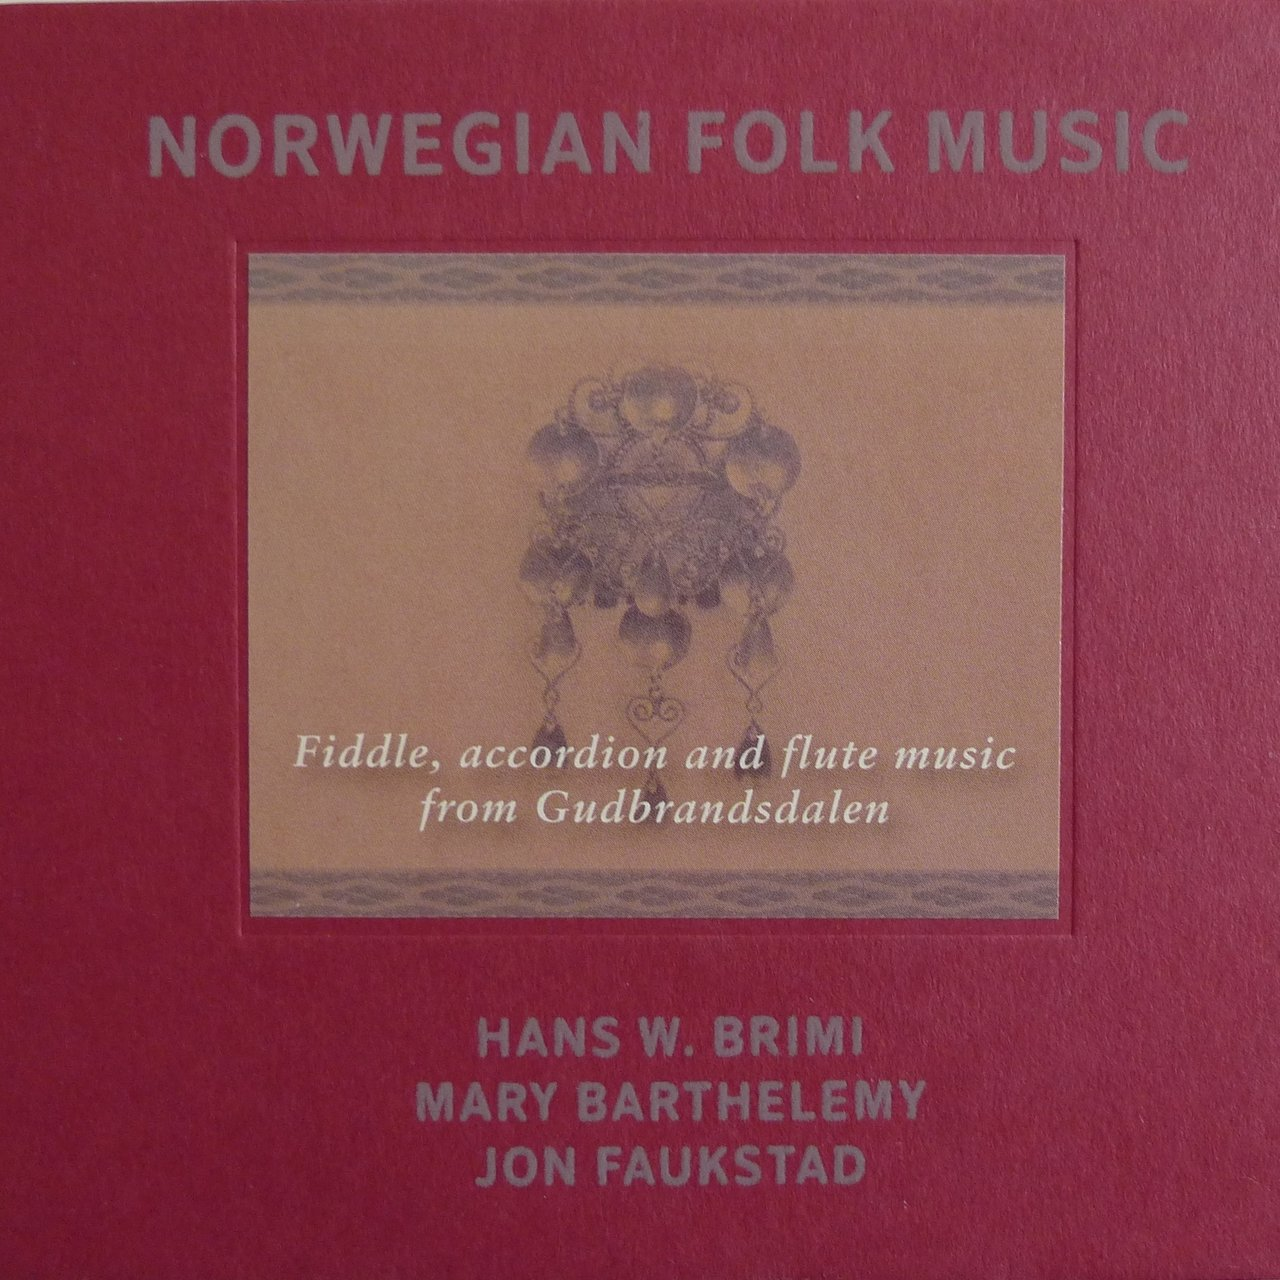 Norwegian Folk Music